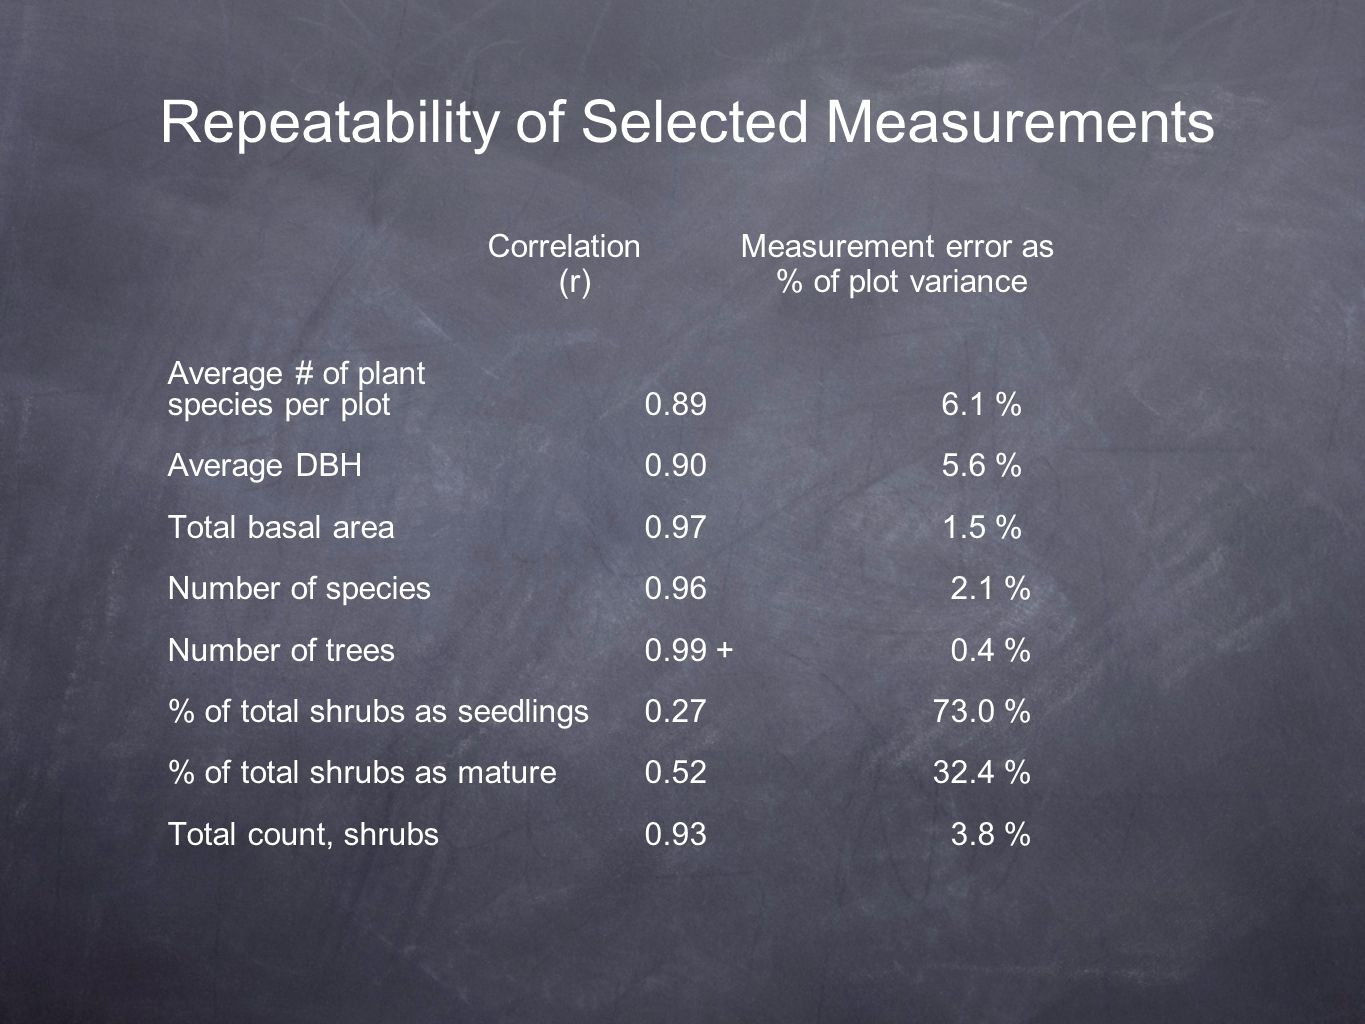 Repeatability of Selected Measurements